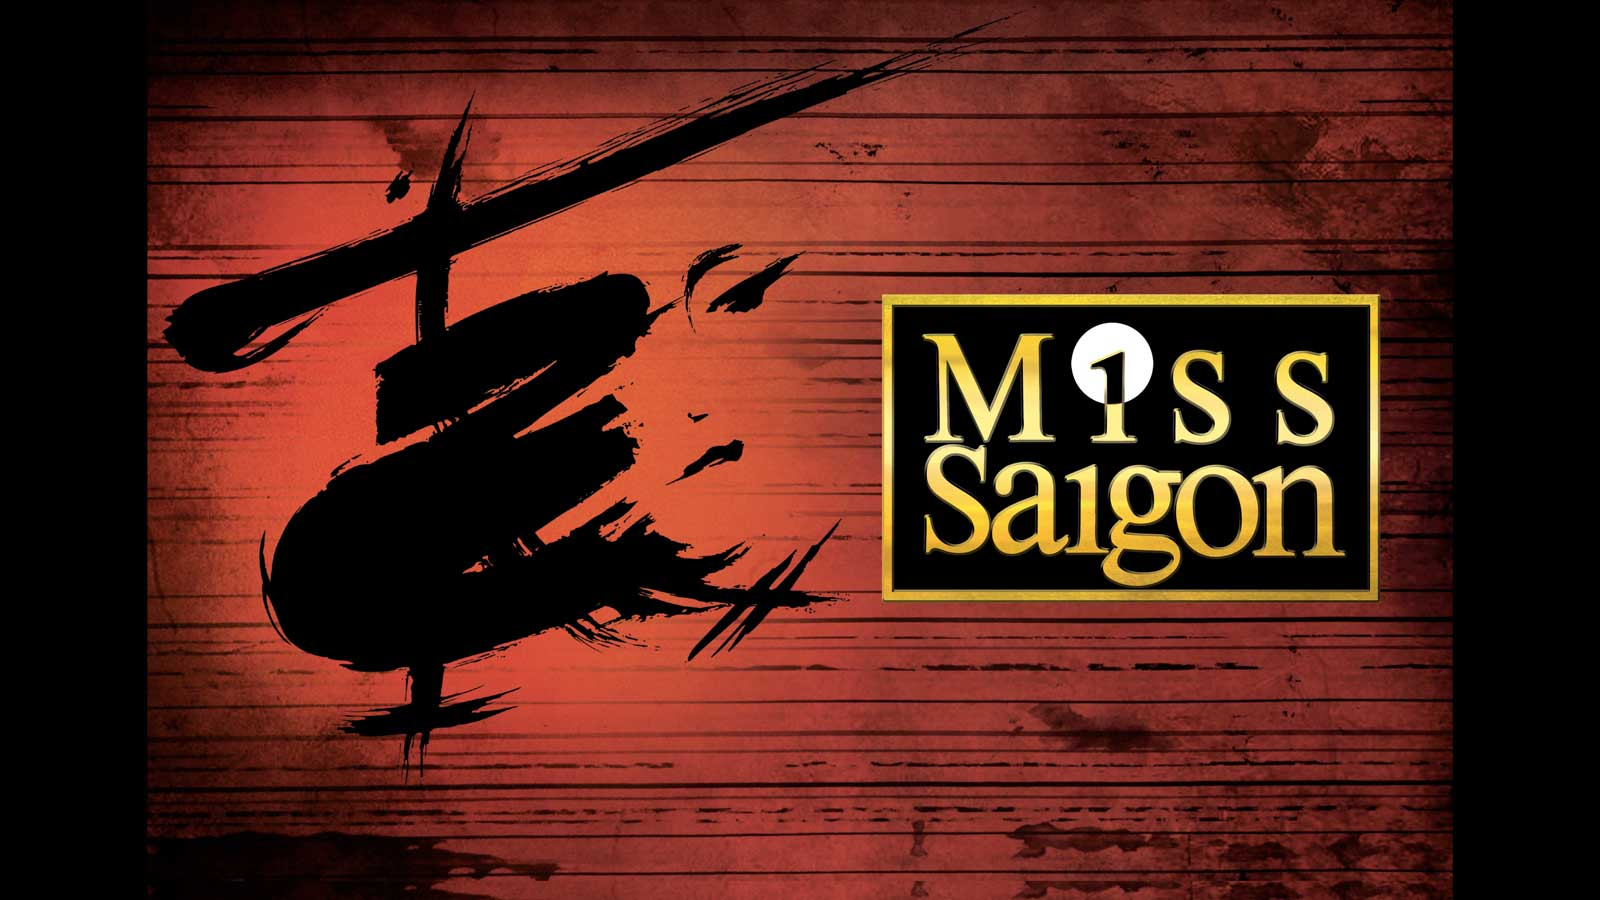 Miss Saigon, no longer just the movie in my mind